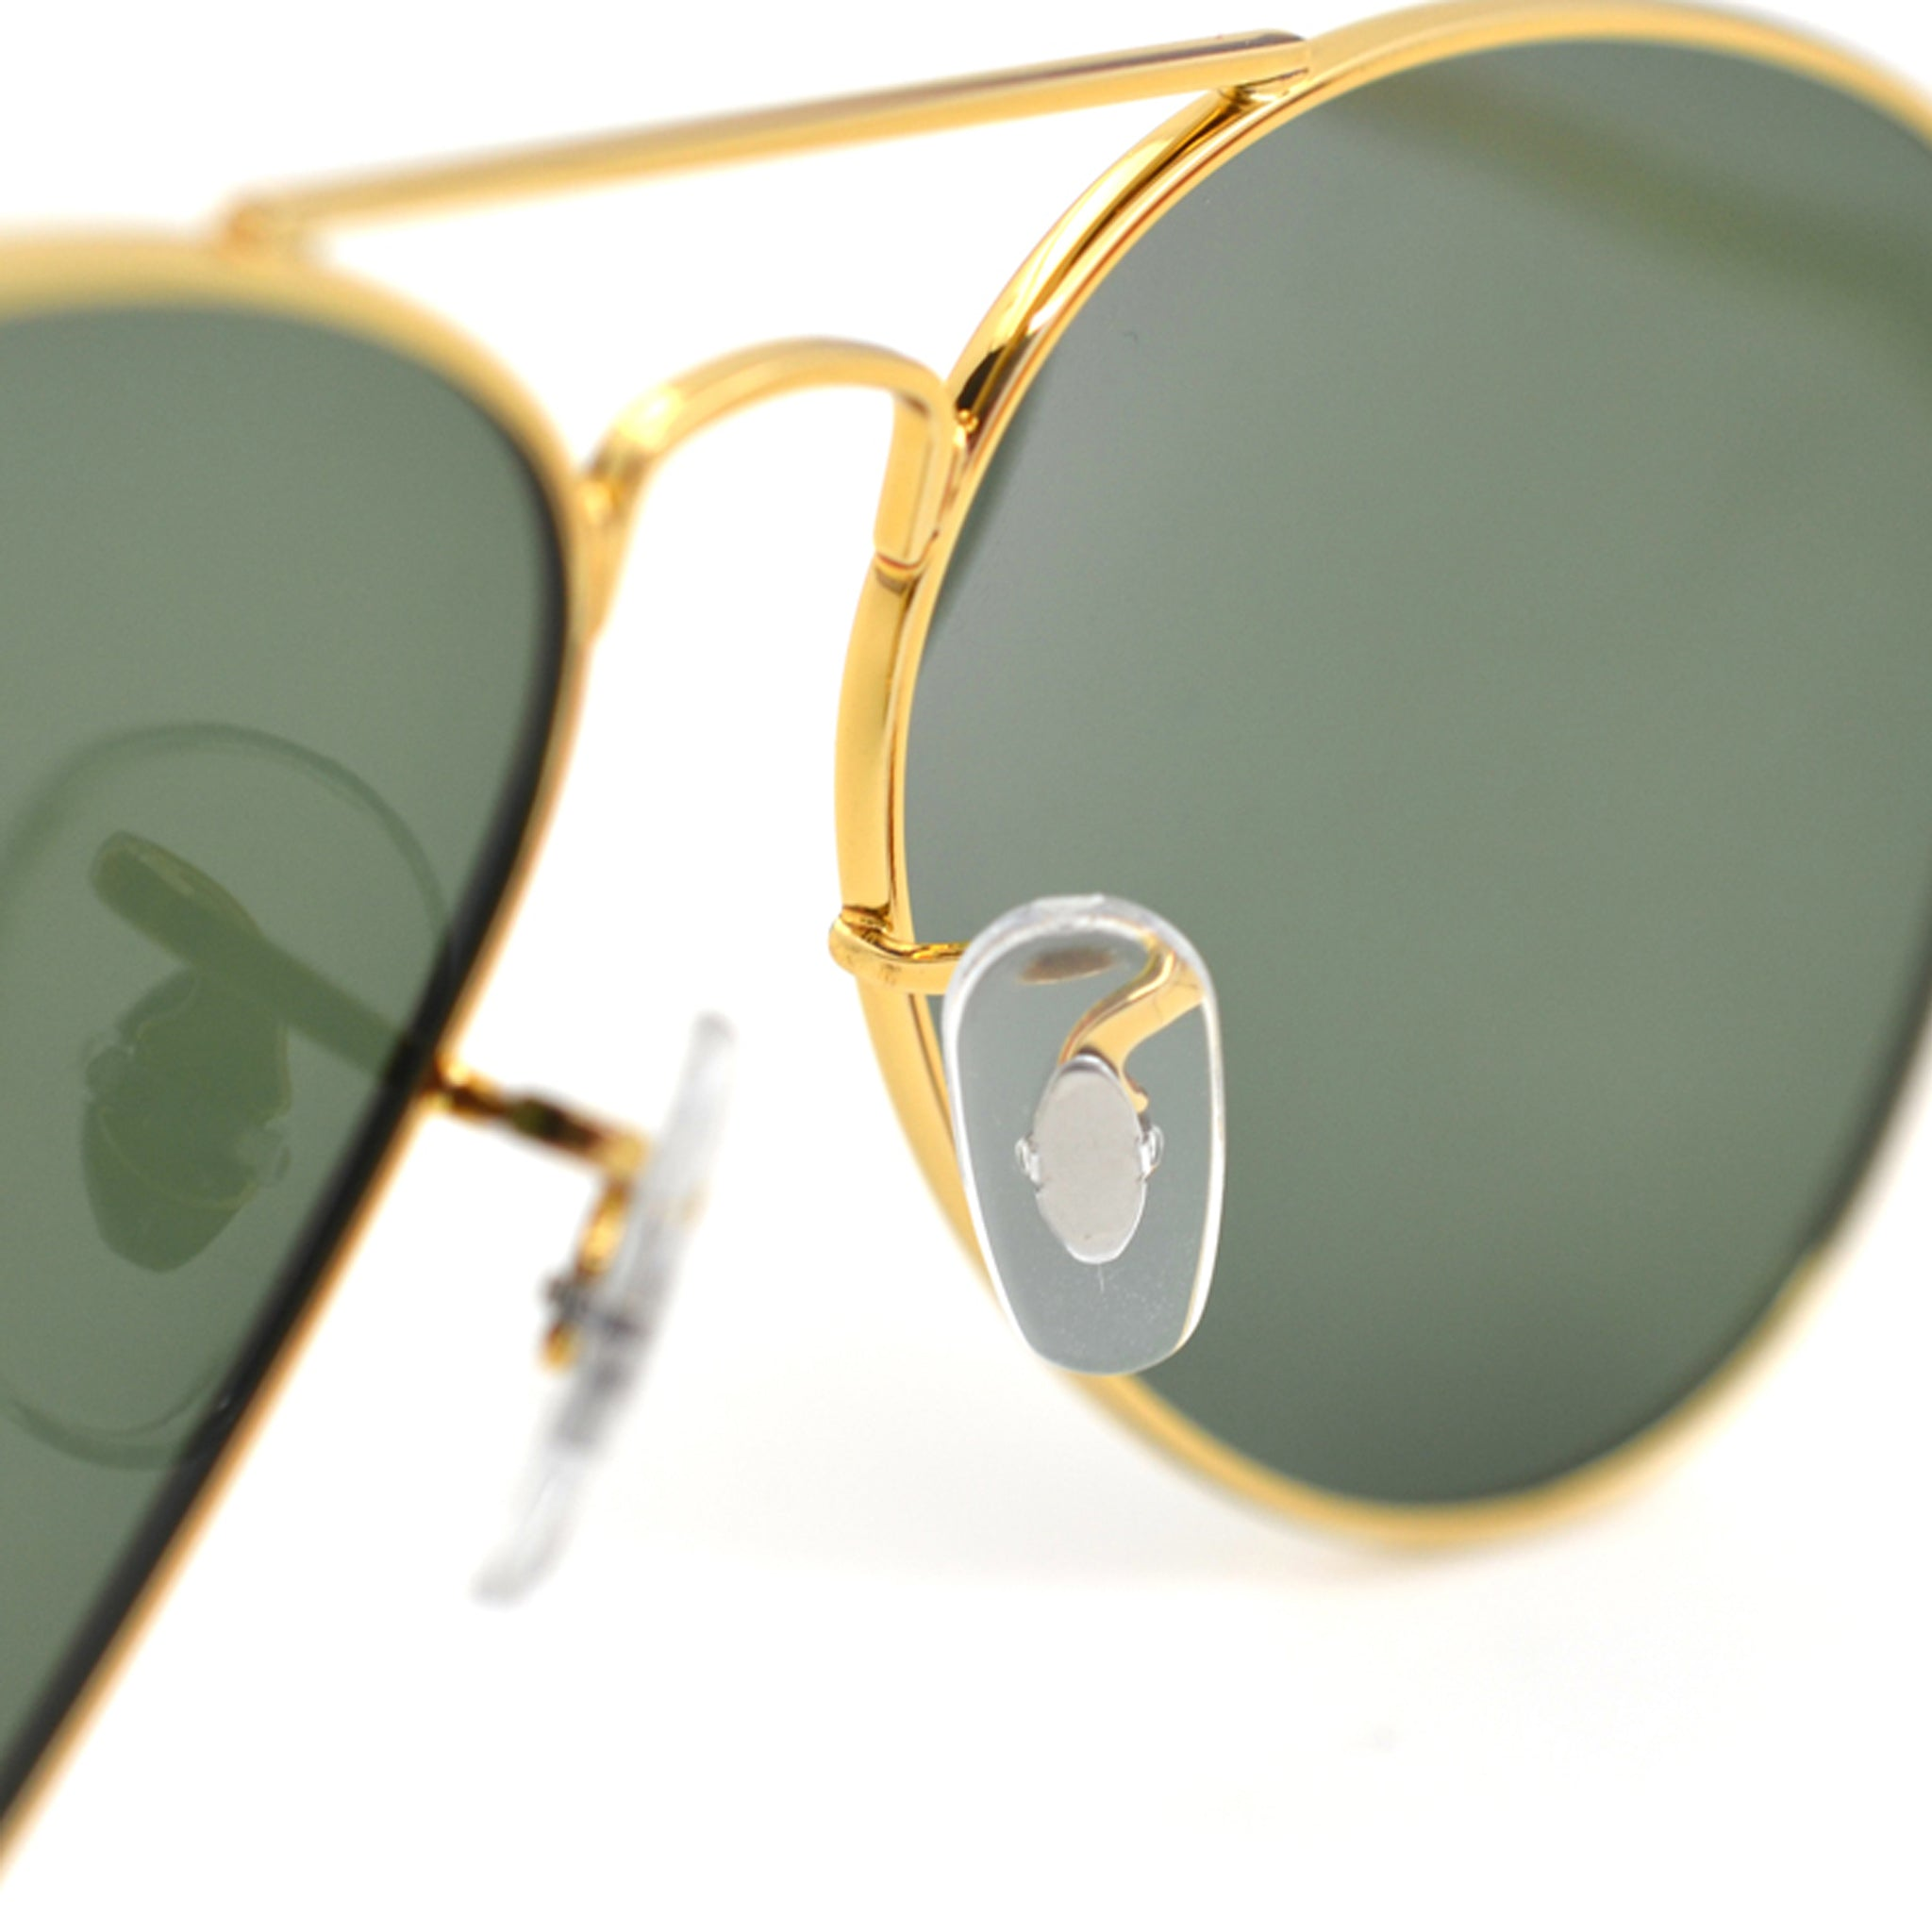 Clipse sunglasses, cevcollection